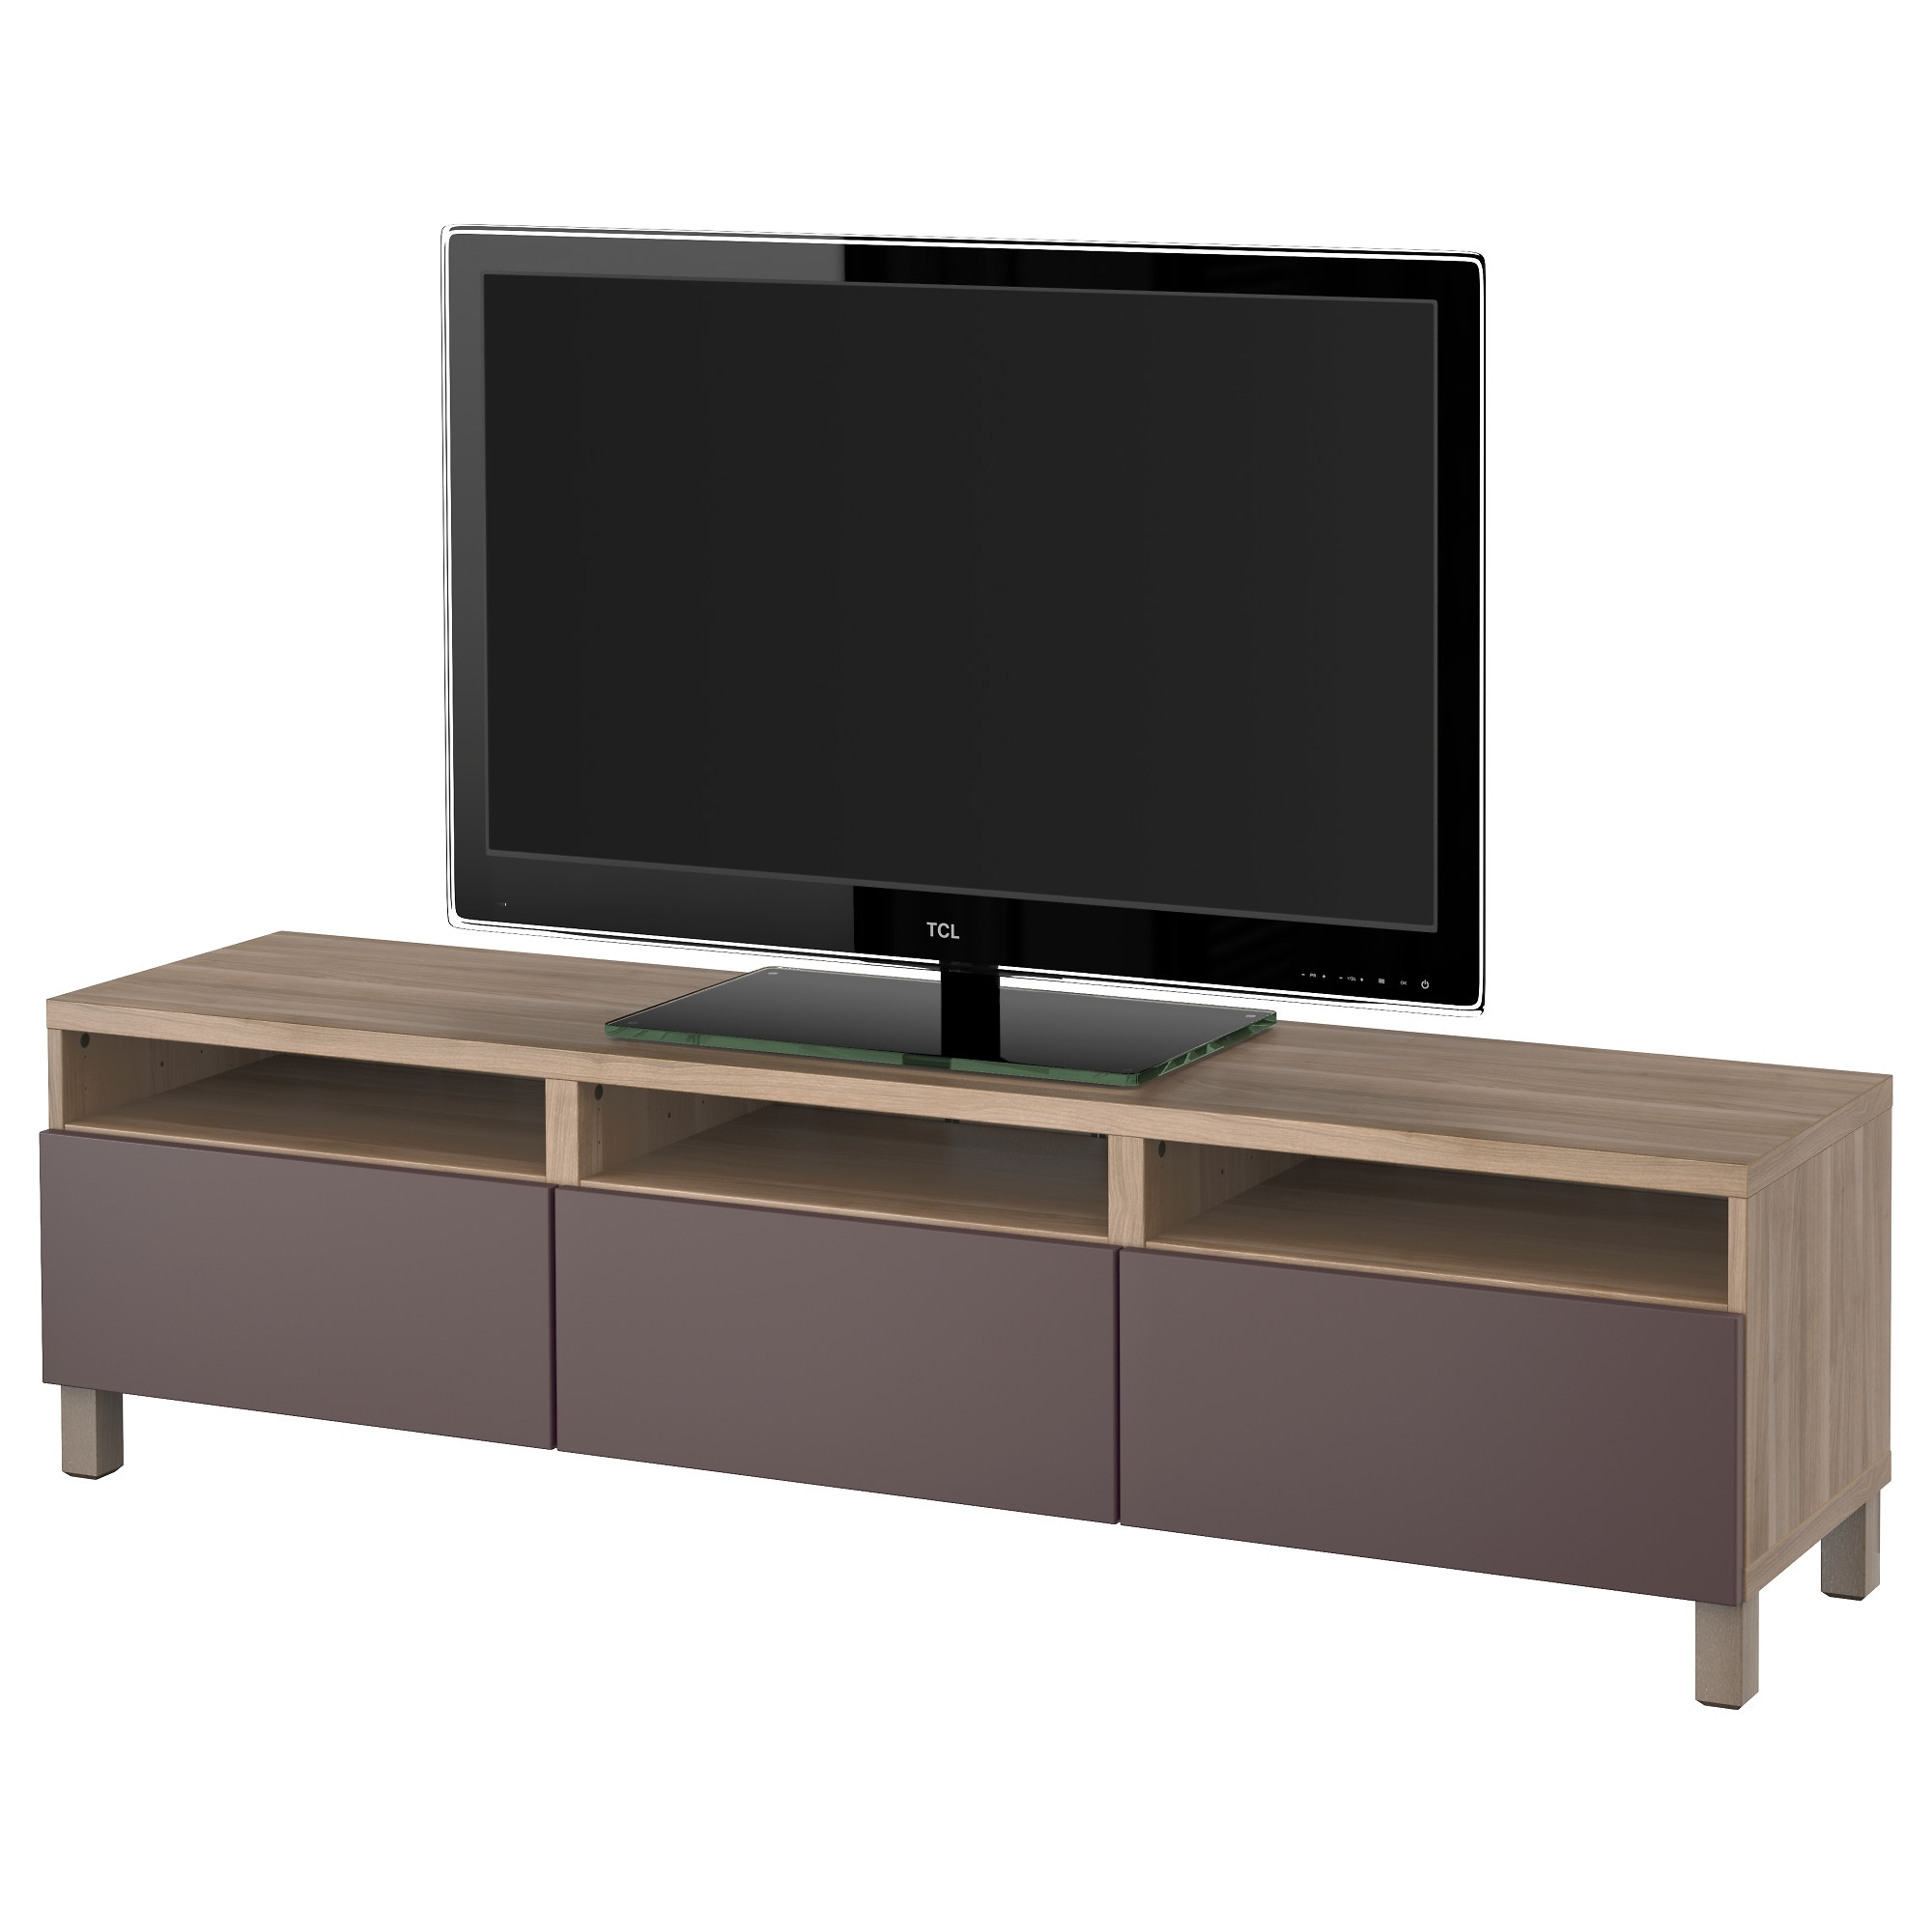 Ikea meuble tv blanc brusali banc tv meuble tv - Meuble support tv ikea ...